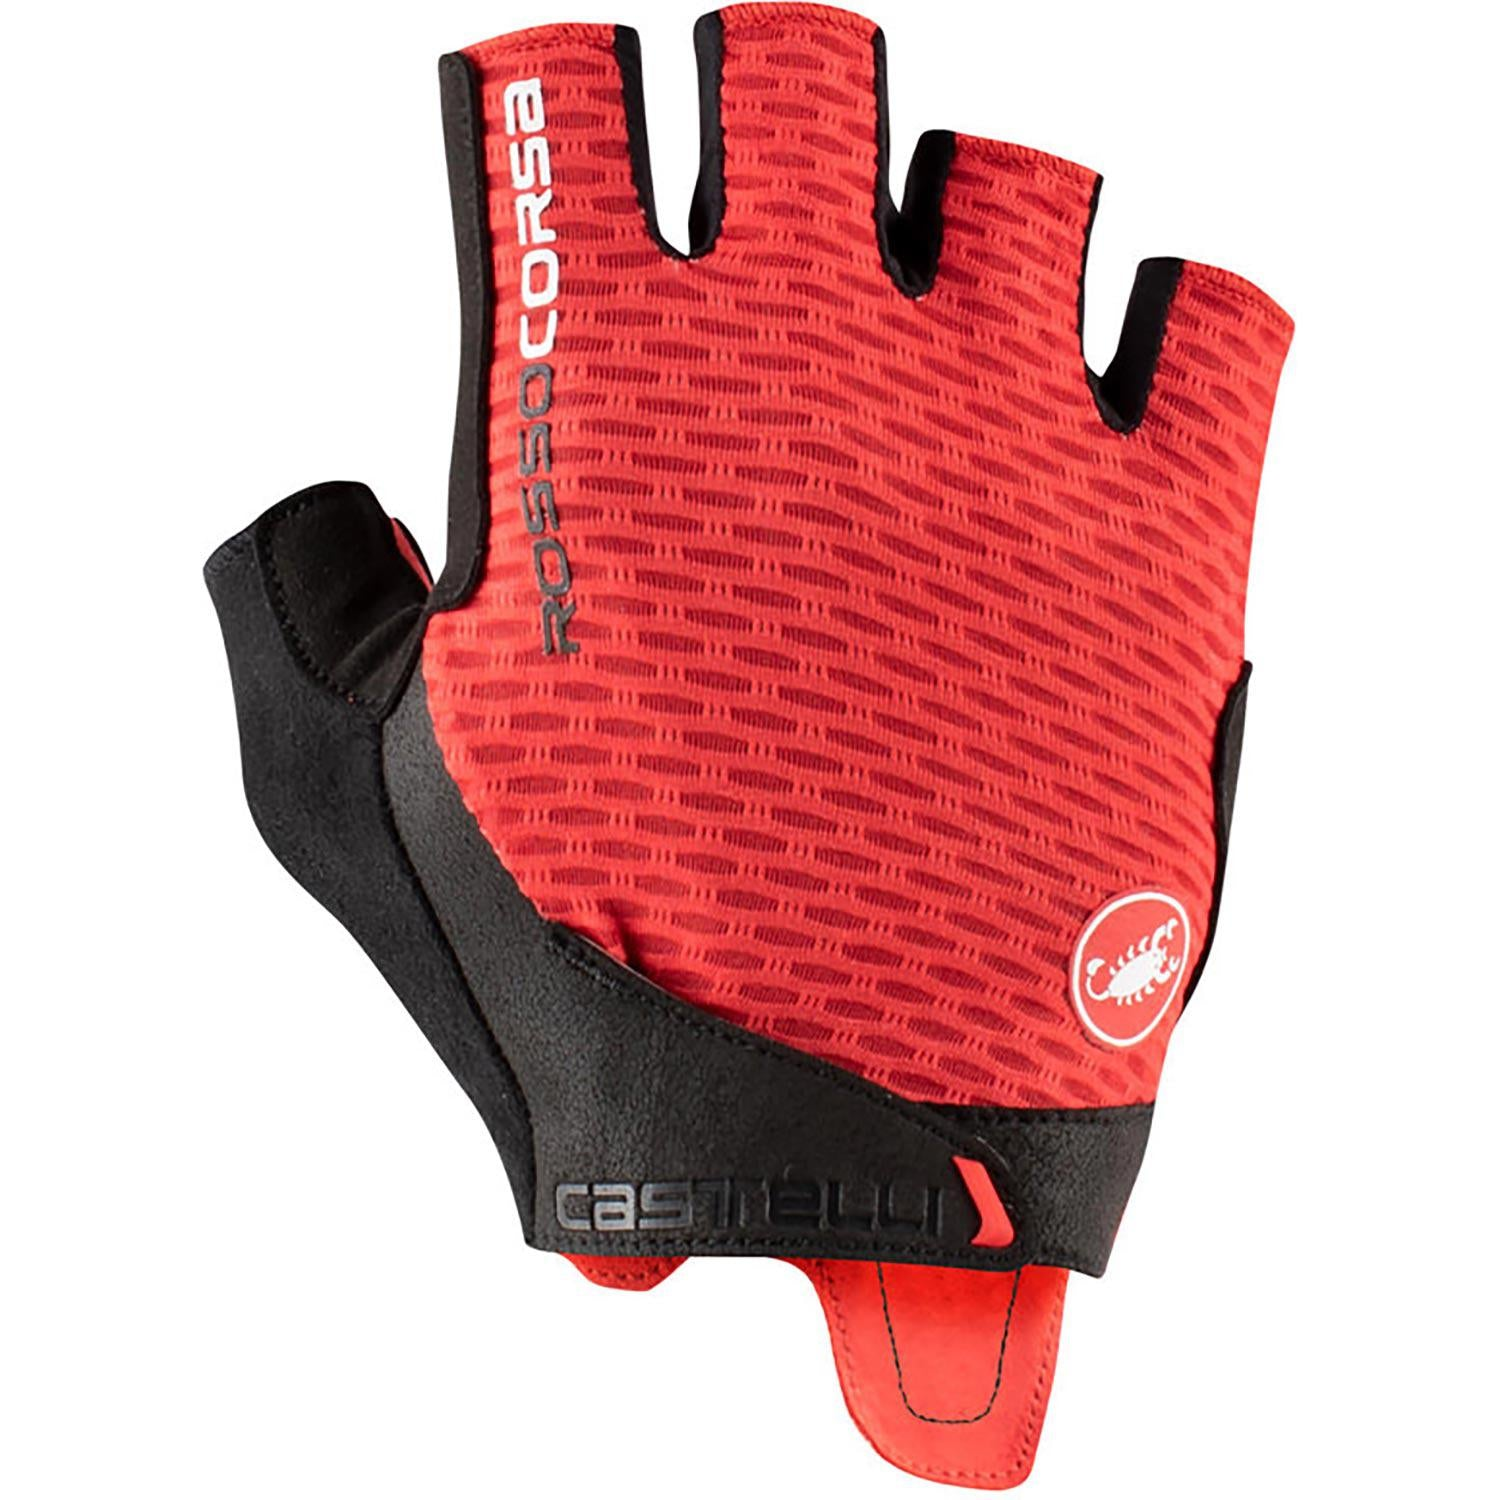 Castelli-Castelli Rosso Corsa Pro V Gloves-Red-XS-CS210240231-saddleback-elite-performance-cycling